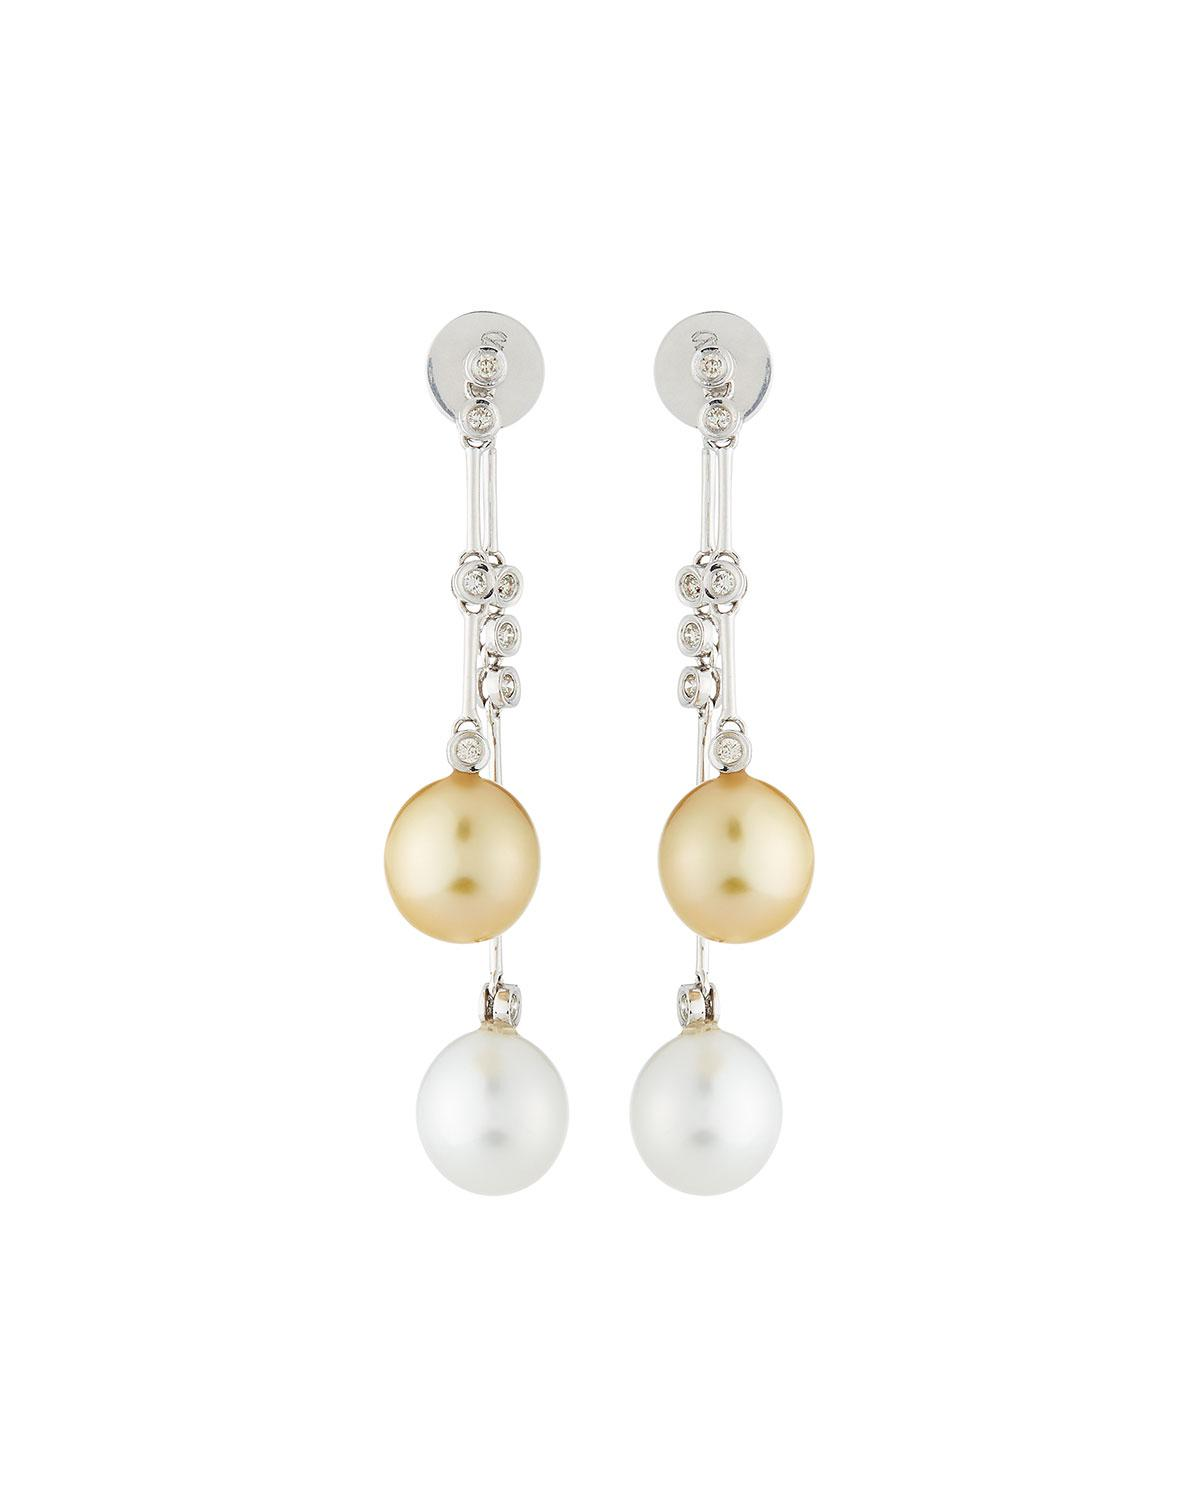 Belpearl 14k White South Sea Pearl & Diamond Drop Earrings, 10-11mm